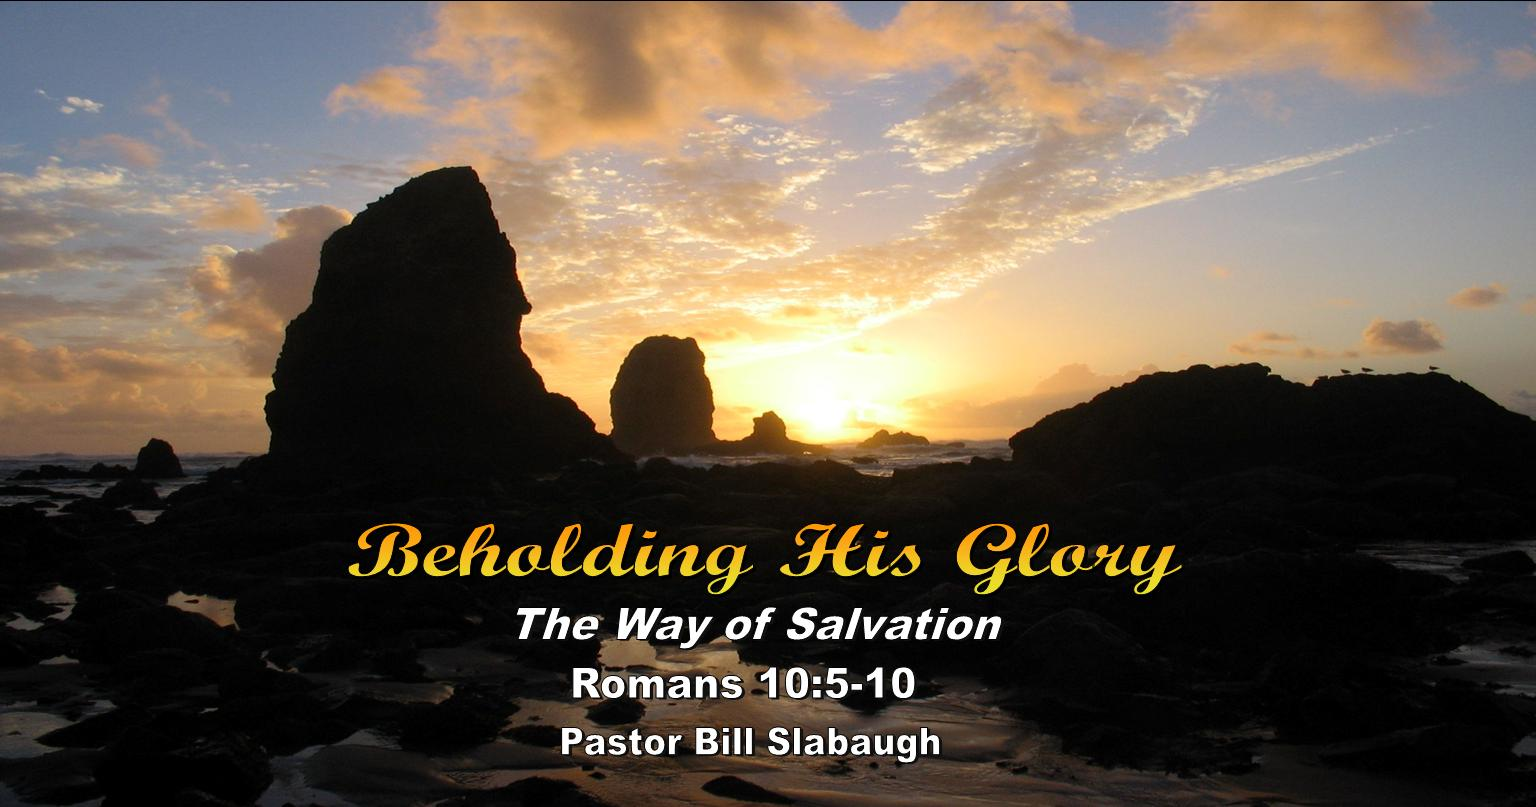 Sermon Outline: Romans 10:5-10 ~ The Way of Salvation